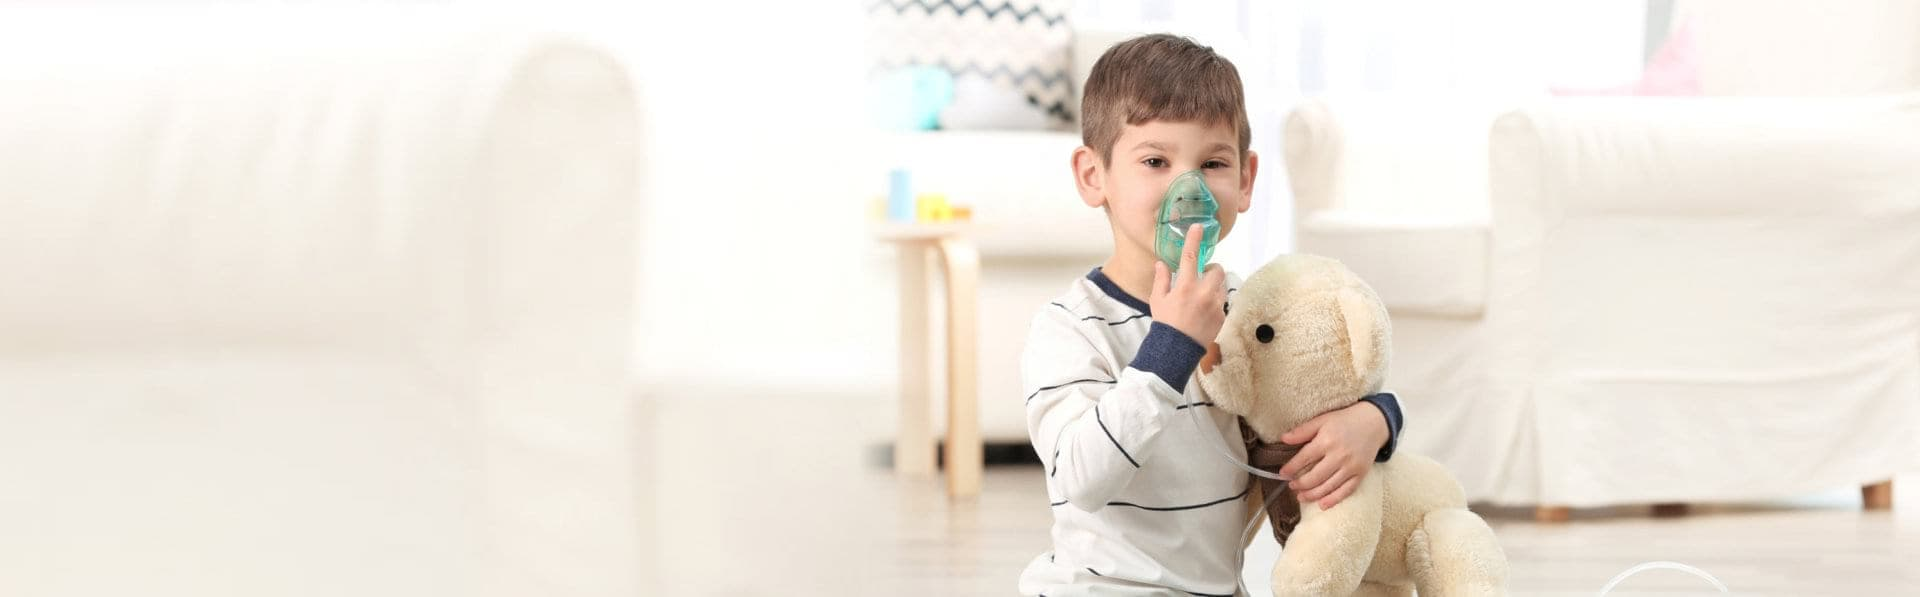 Little boy playing an oxygen mask while hugging his teddy bear